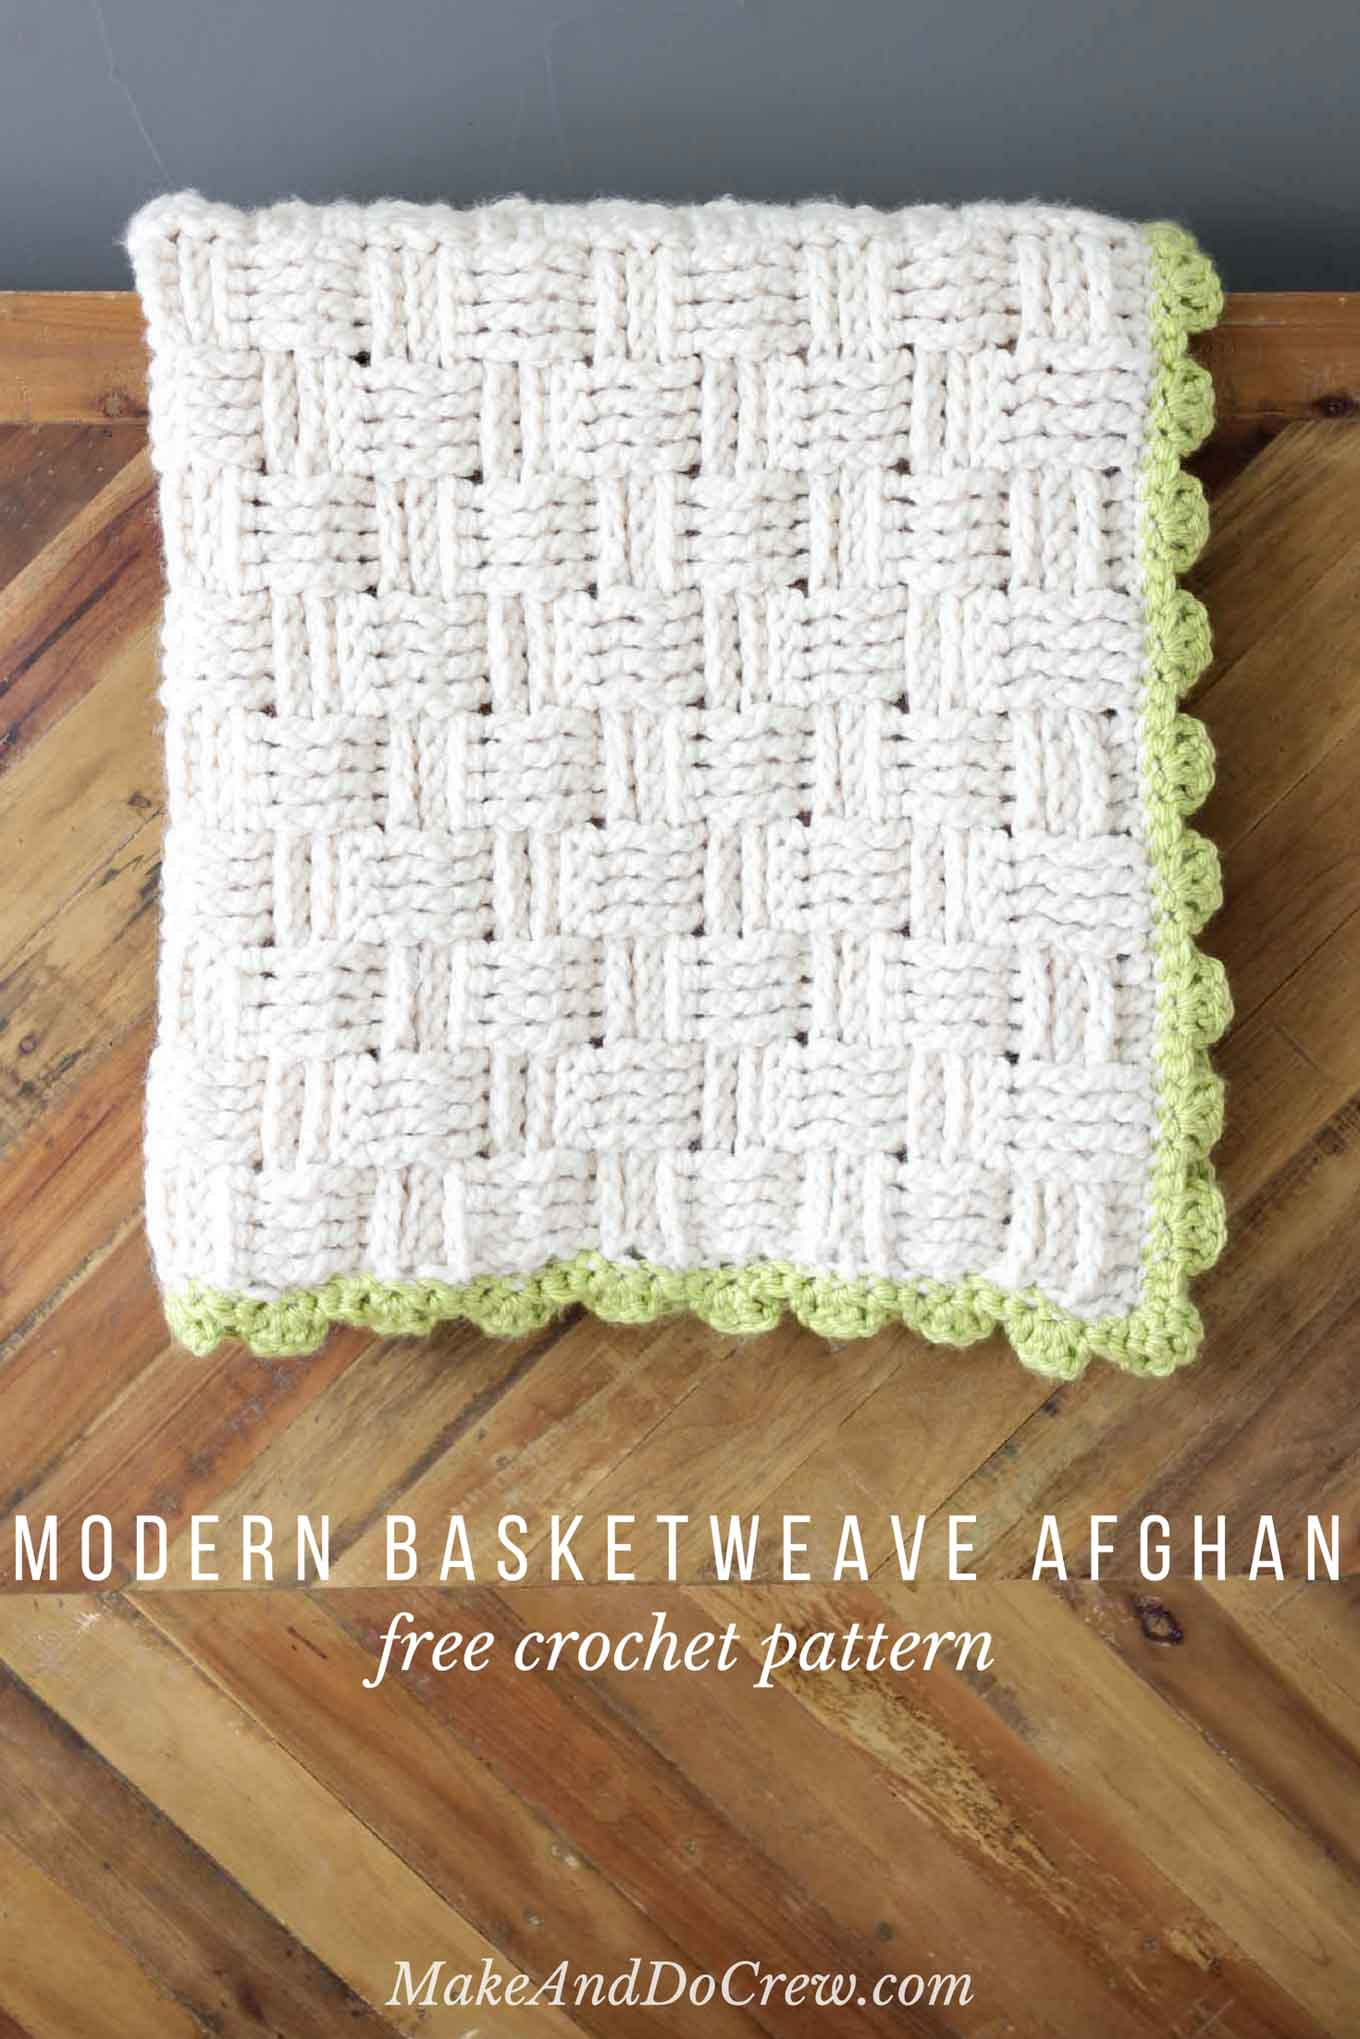 Free Printable Crochet Basket Patterns : Modern Crochet Basket Weave Blanket - Free Pattern